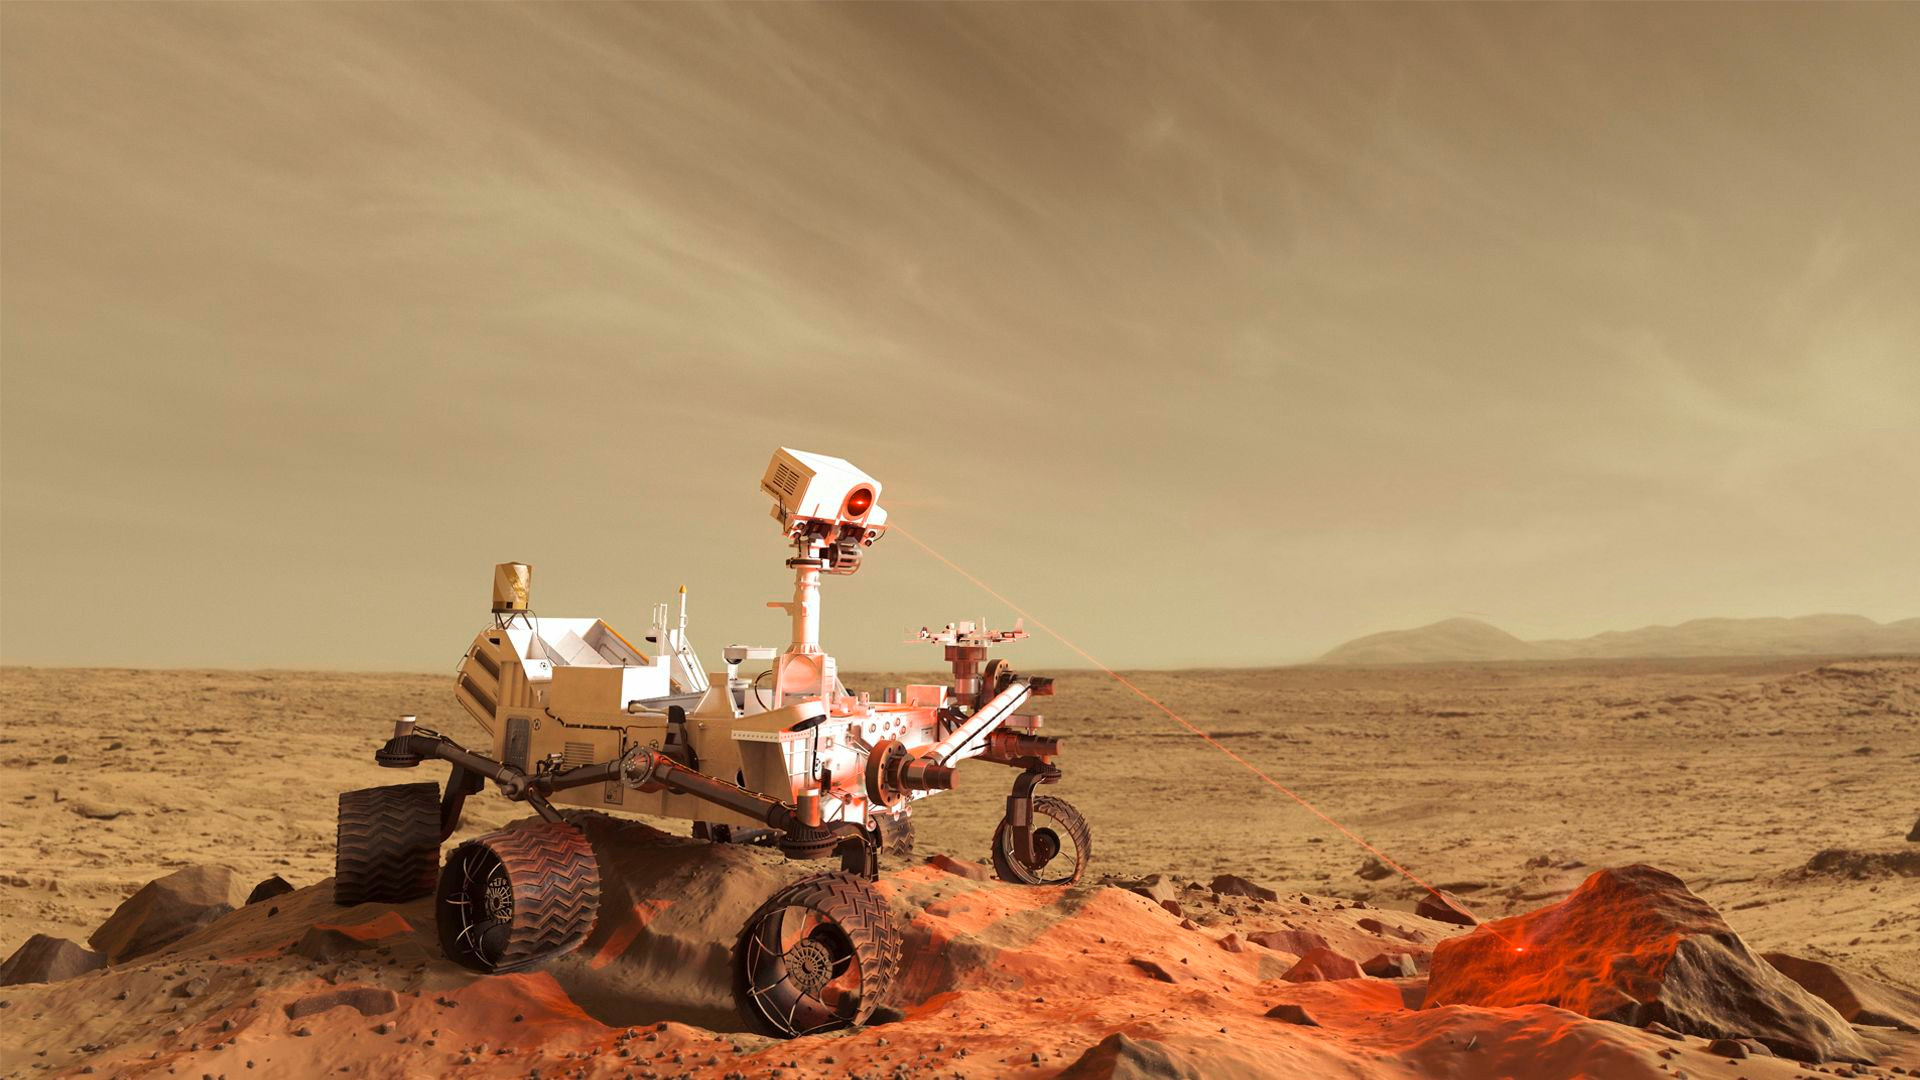 mars rover definition - photo #14